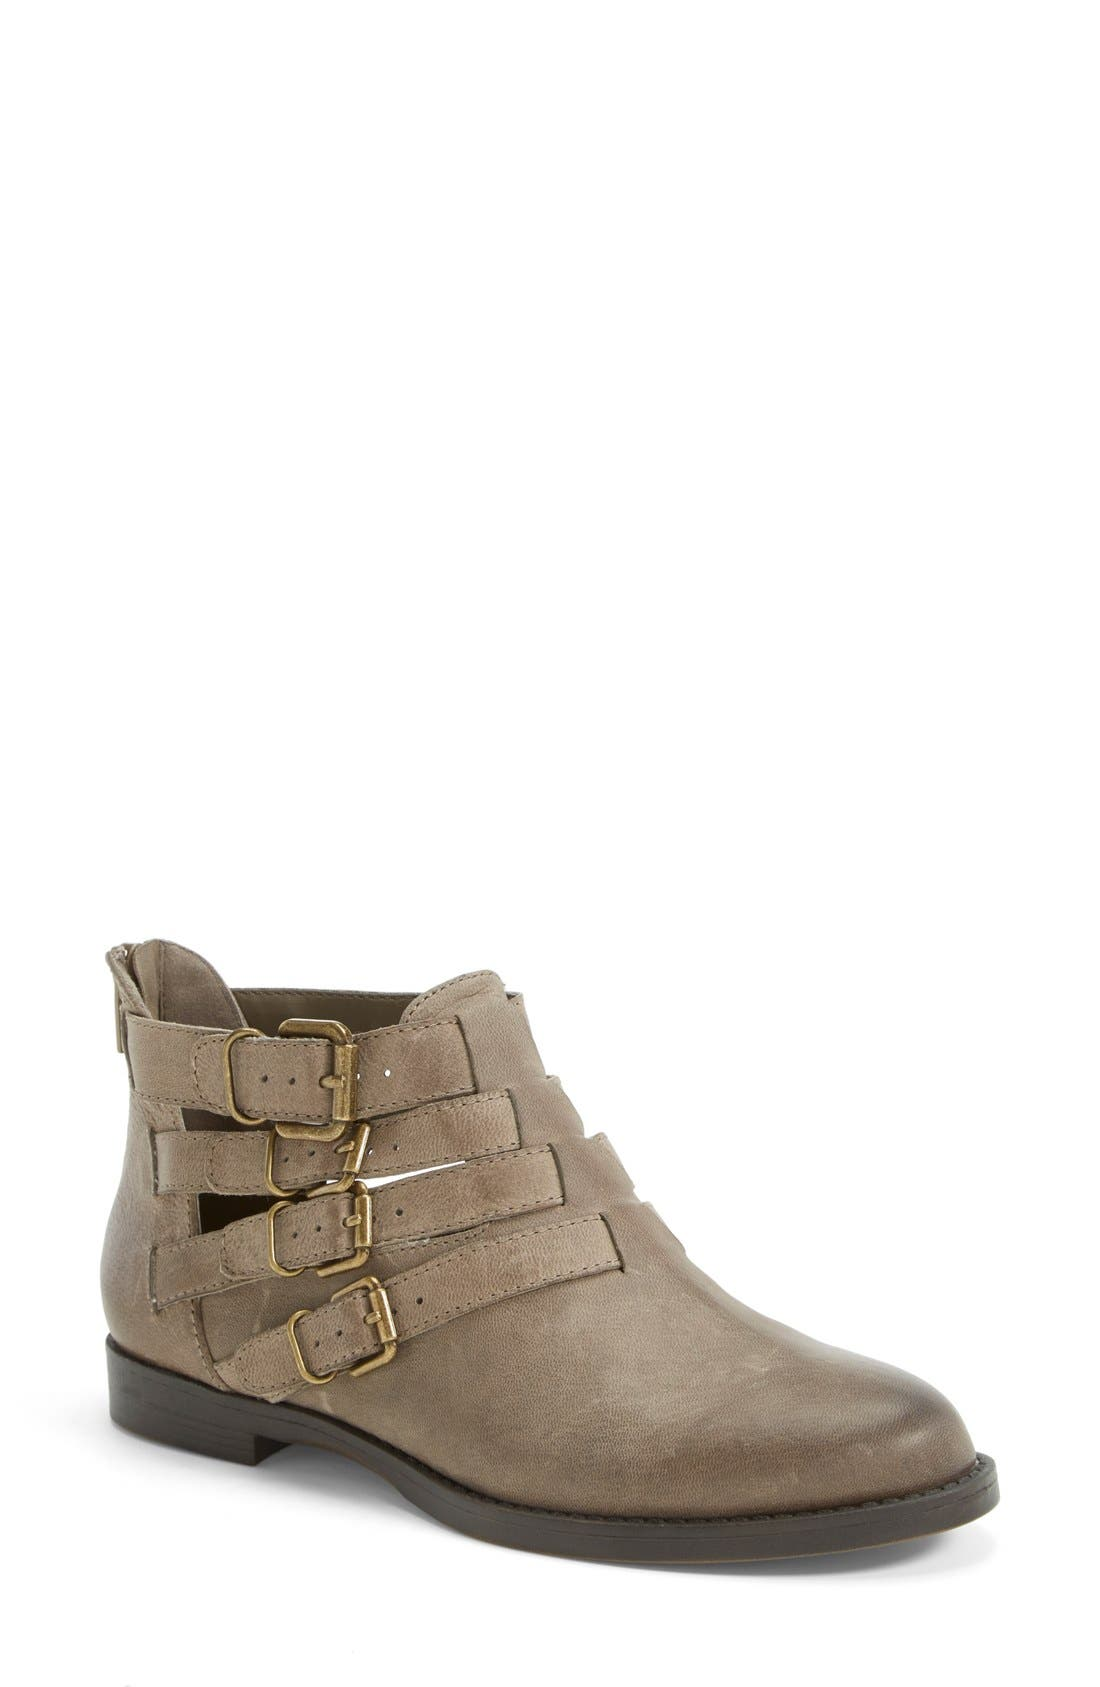 Alternate Image 1 Selected - Bella Vita 'Ronan' Buckle Leather Bootie (Women) (Online Only)